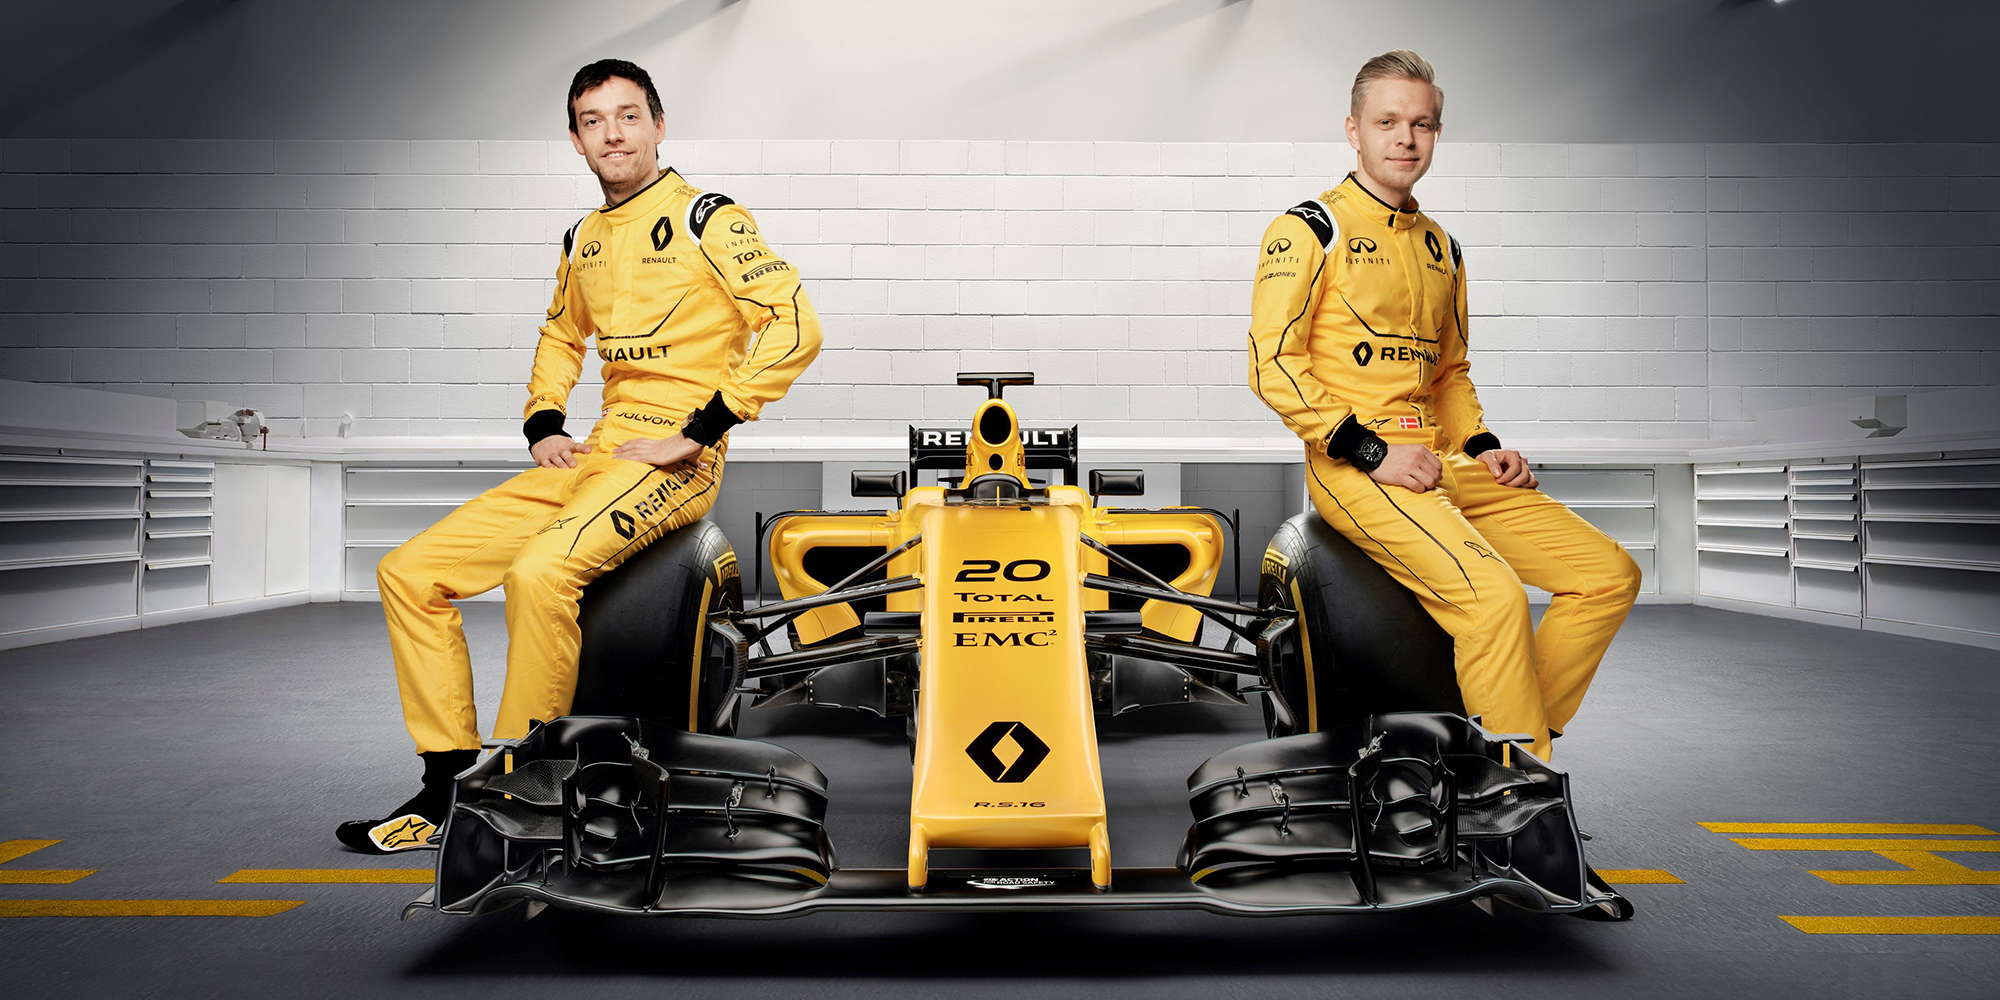 renault gibt gas in gelb neue formel 1 saison startet. Black Bedroom Furniture Sets. Home Design Ideas